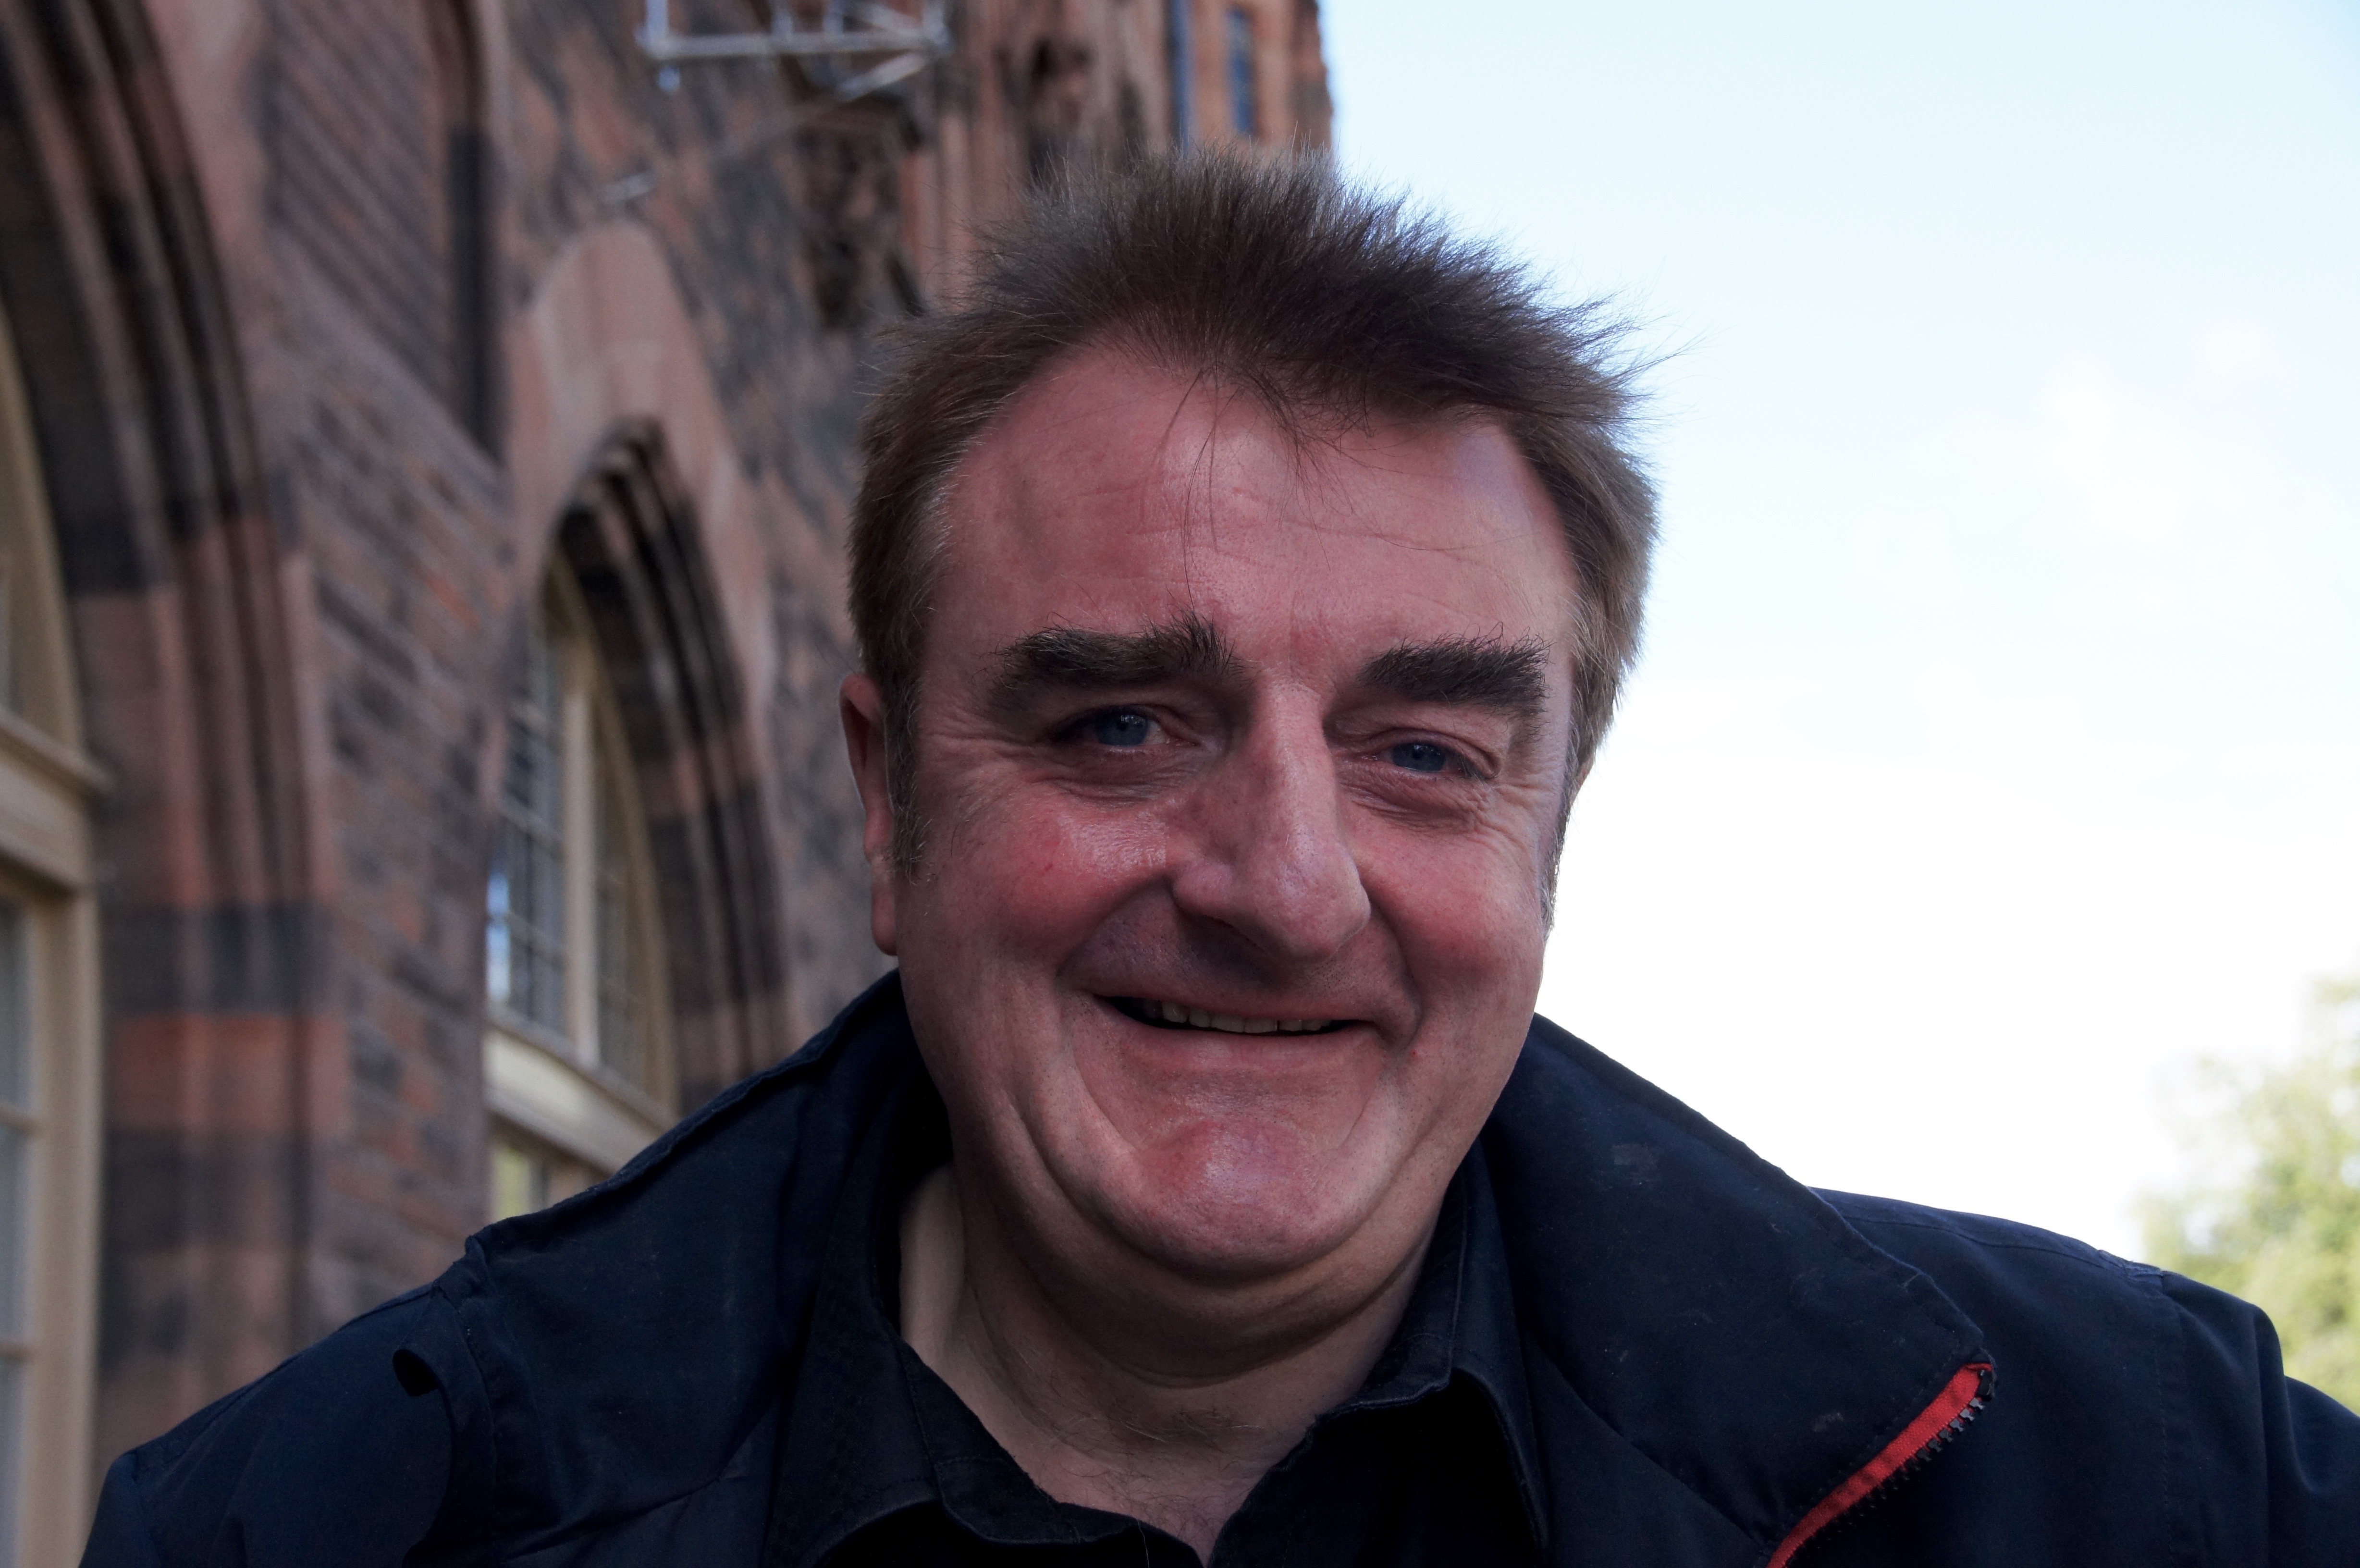 MP Tommy Sheppard backing hearing loss charity